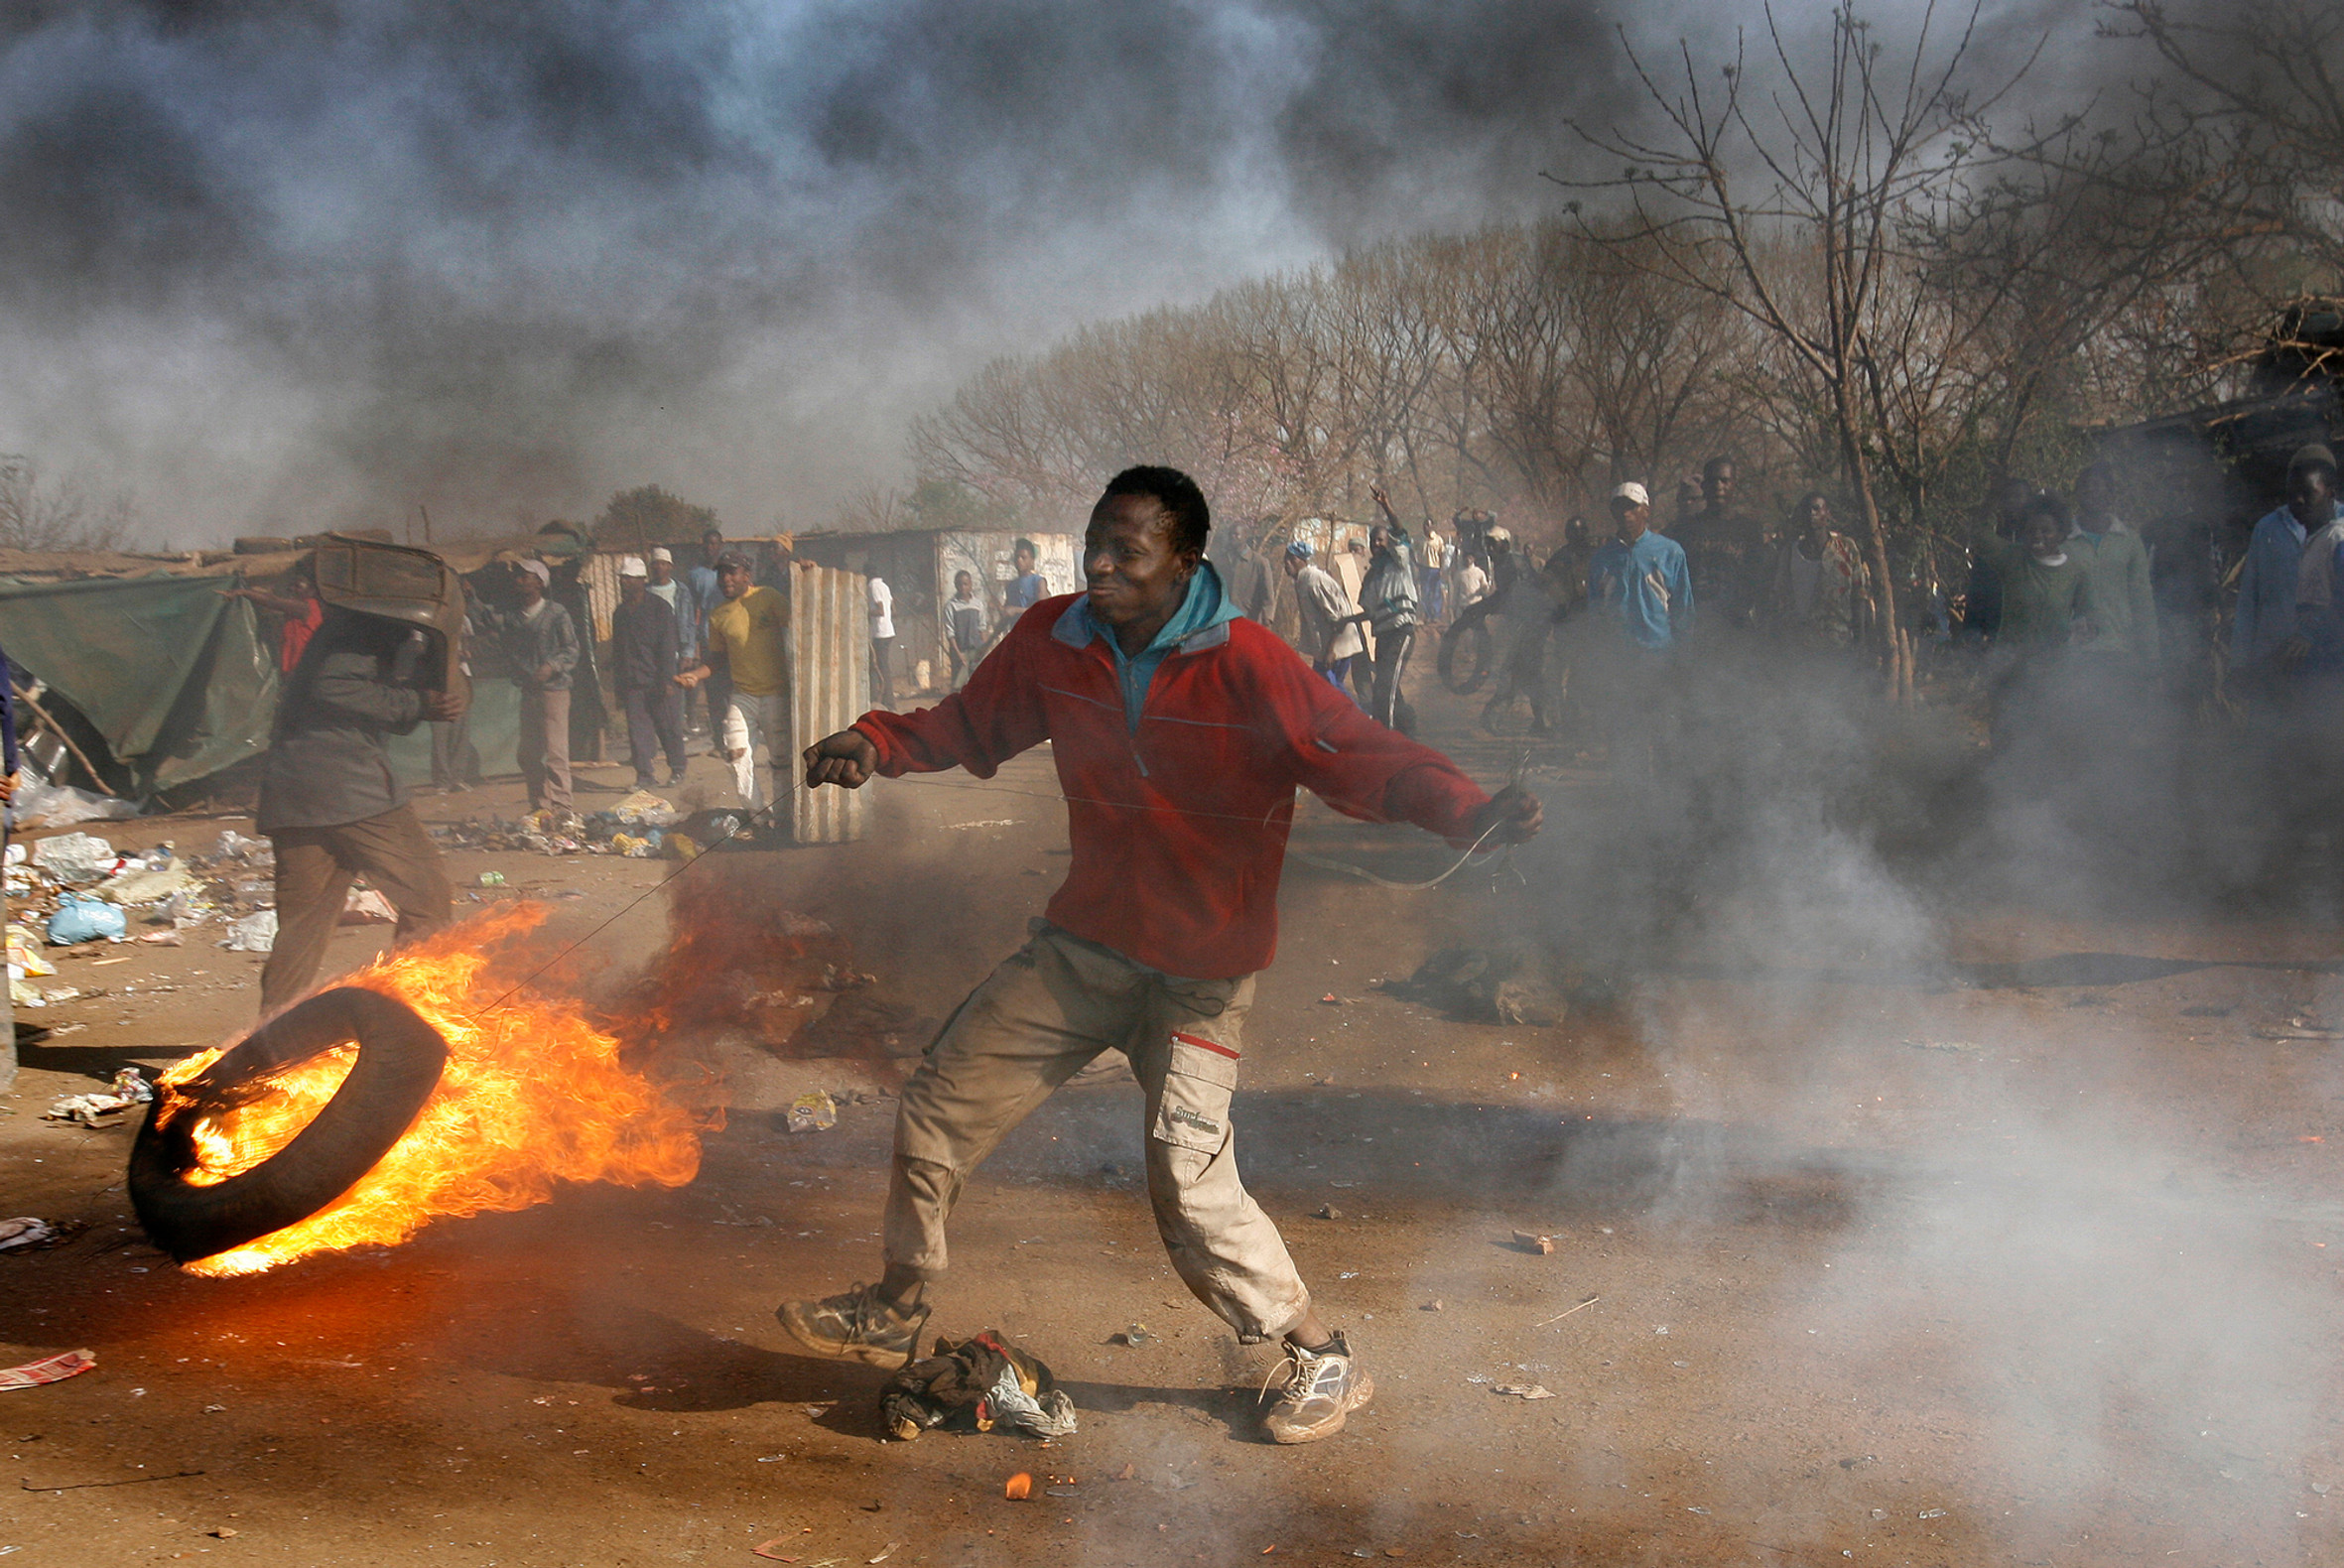 Protesting township residents, South Africa.